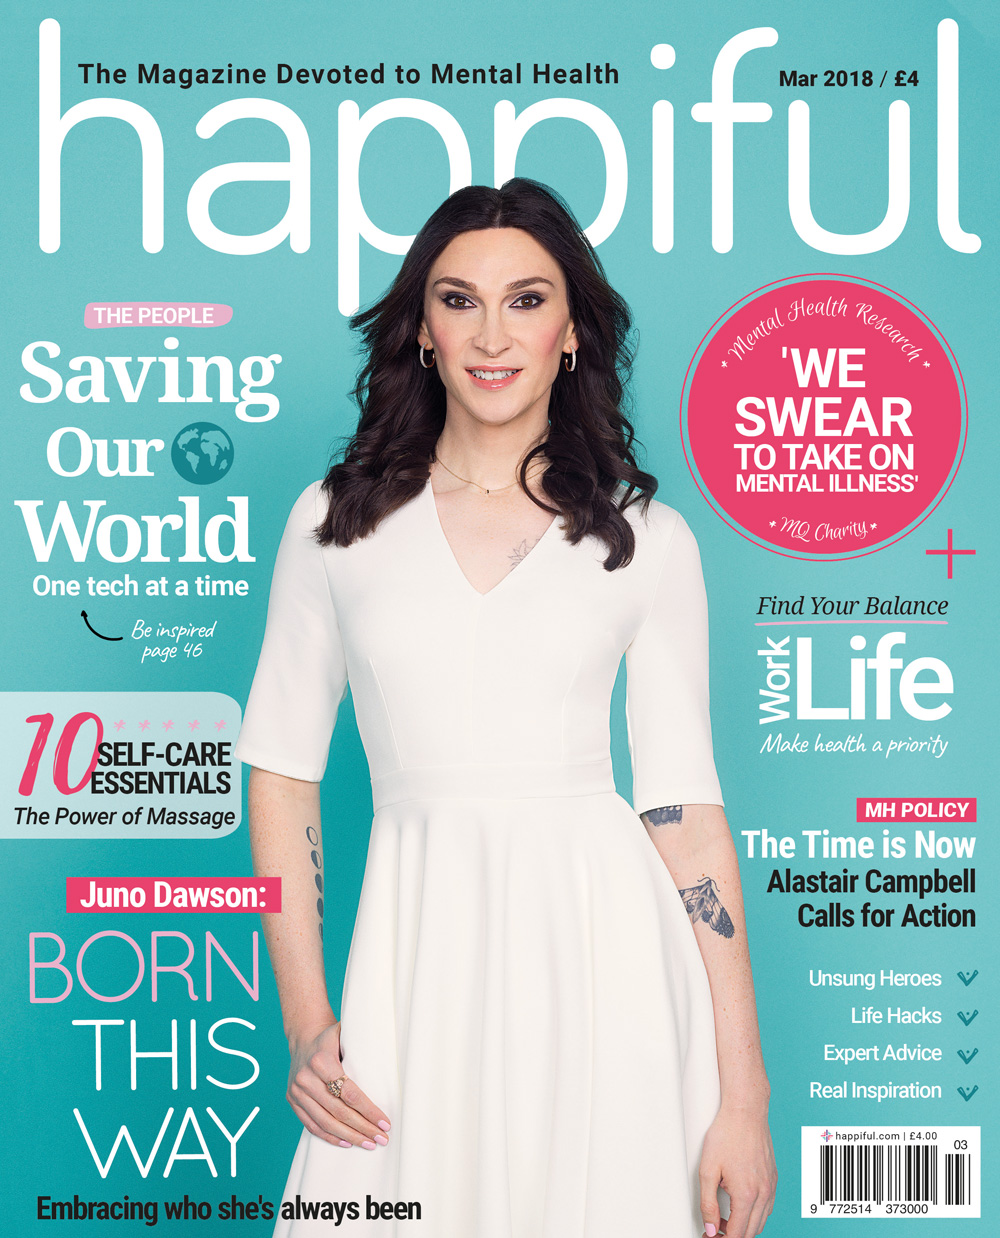 1happiful_issue11_march-1